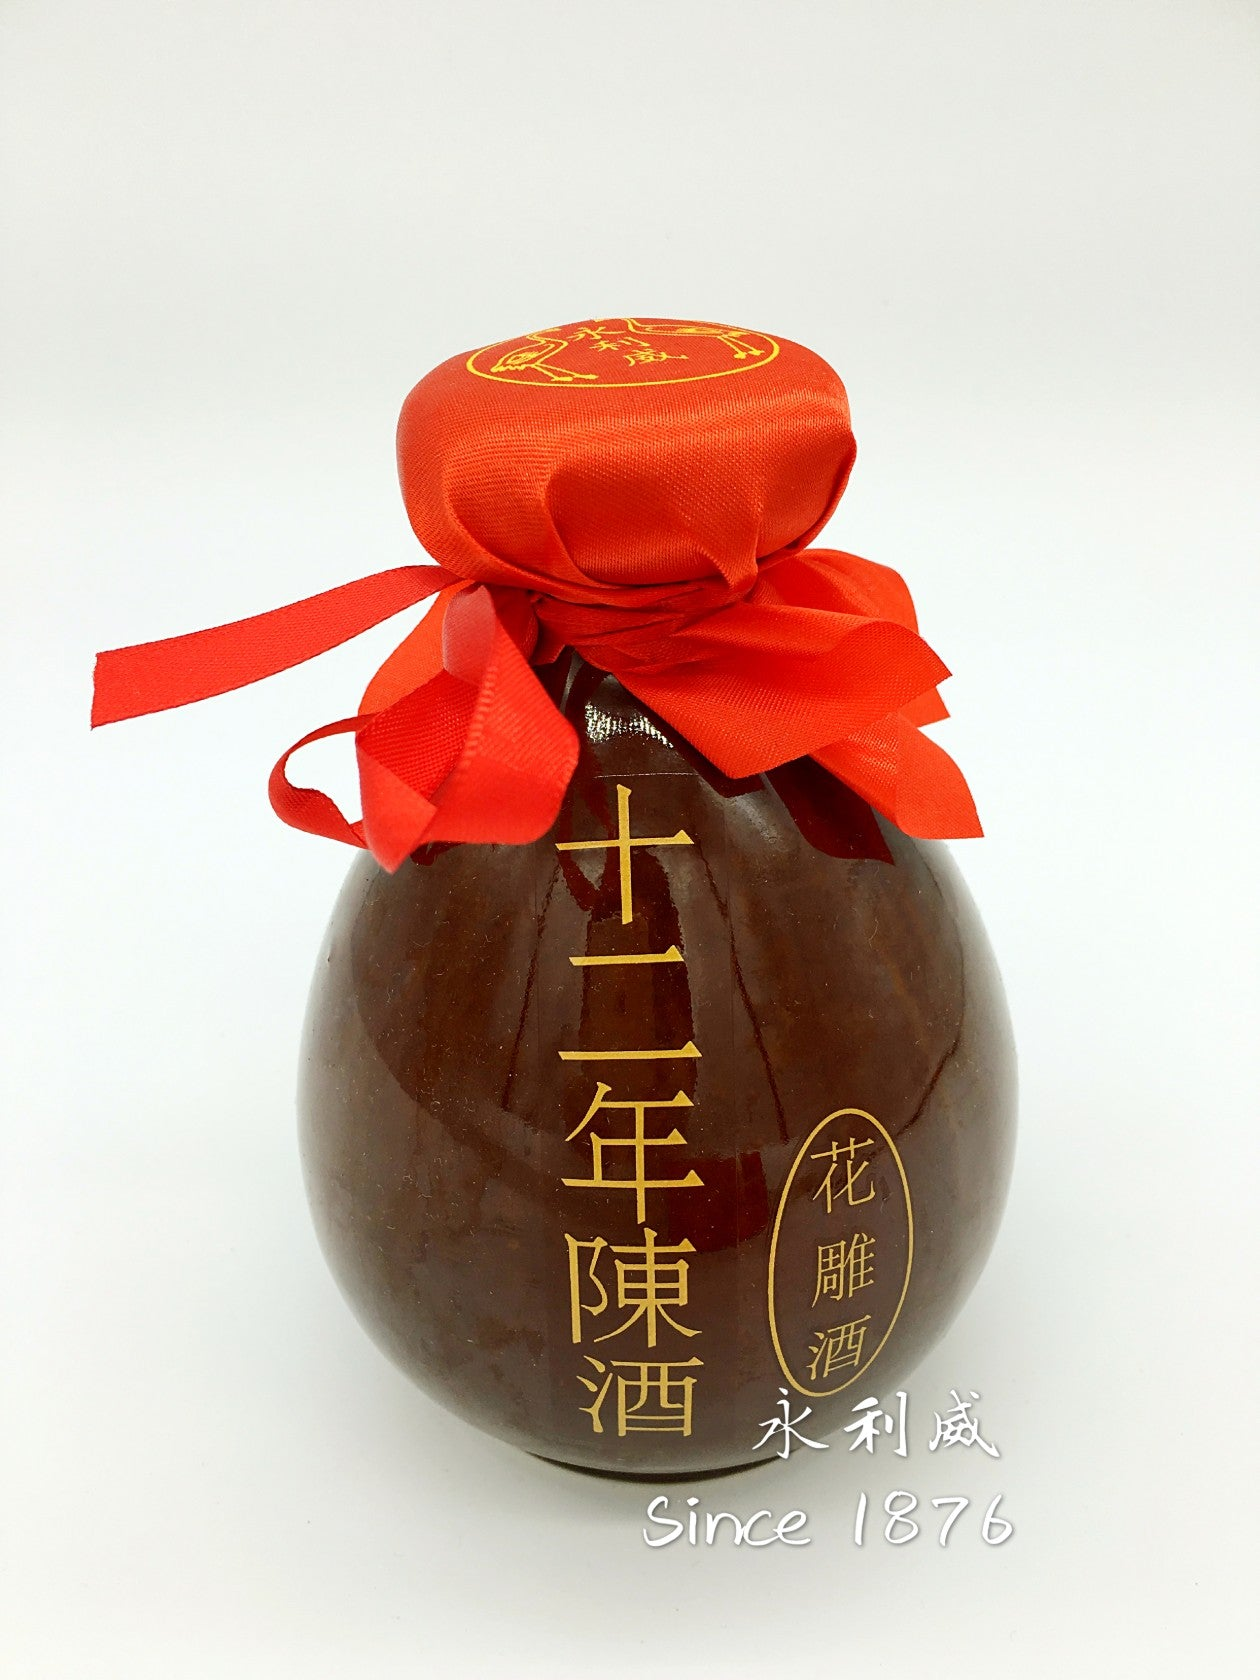 永利威 陳年 花雕酒(陶埕) Wing Lee Wai Aged Huadiao (Ceramic Cask Yellow Wine)